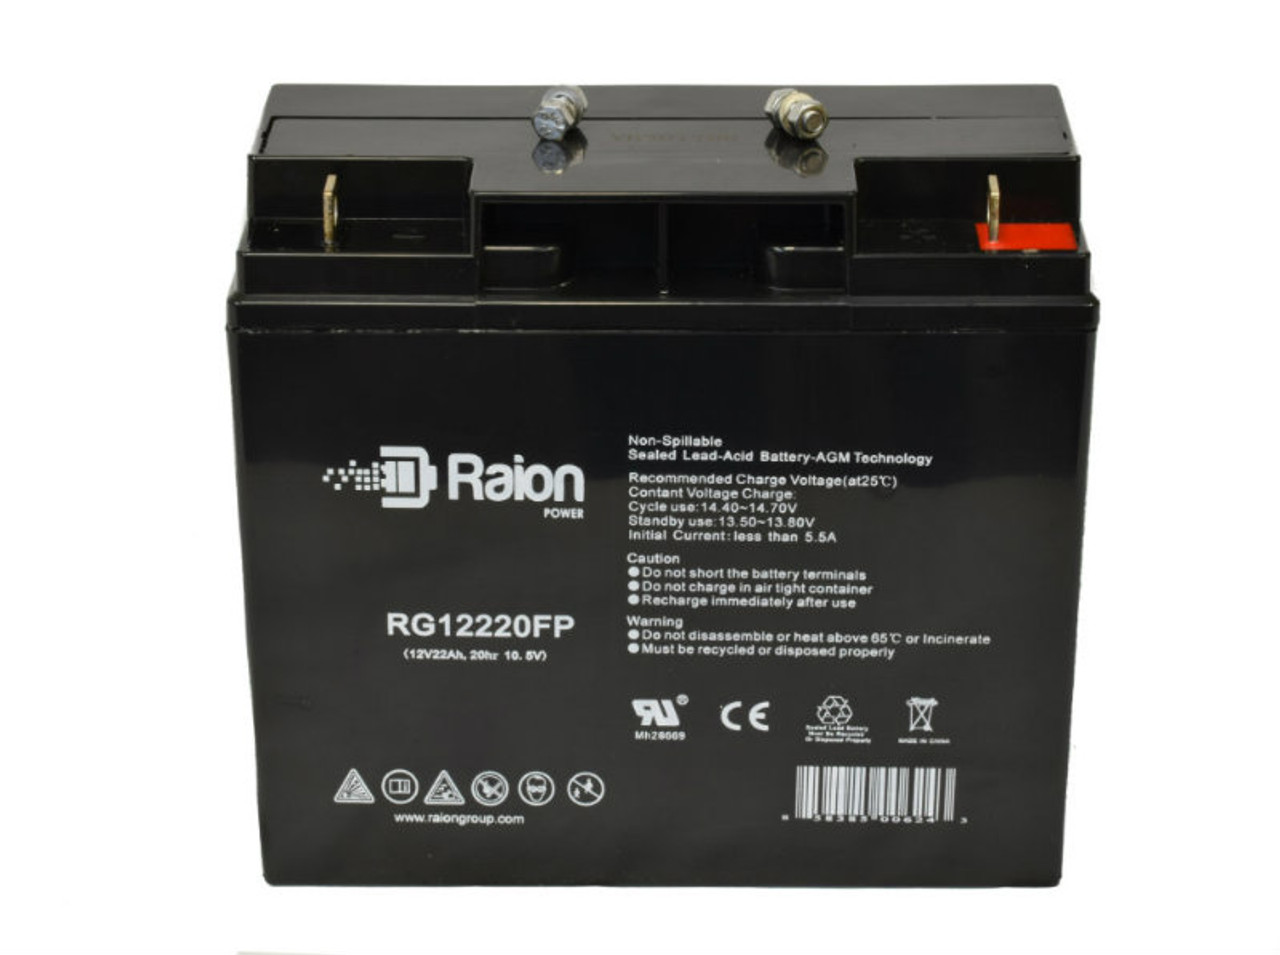 RG12220FP Sealed Lead Acid Battery Pack For Amigo Fiesta III Mobility Scooter